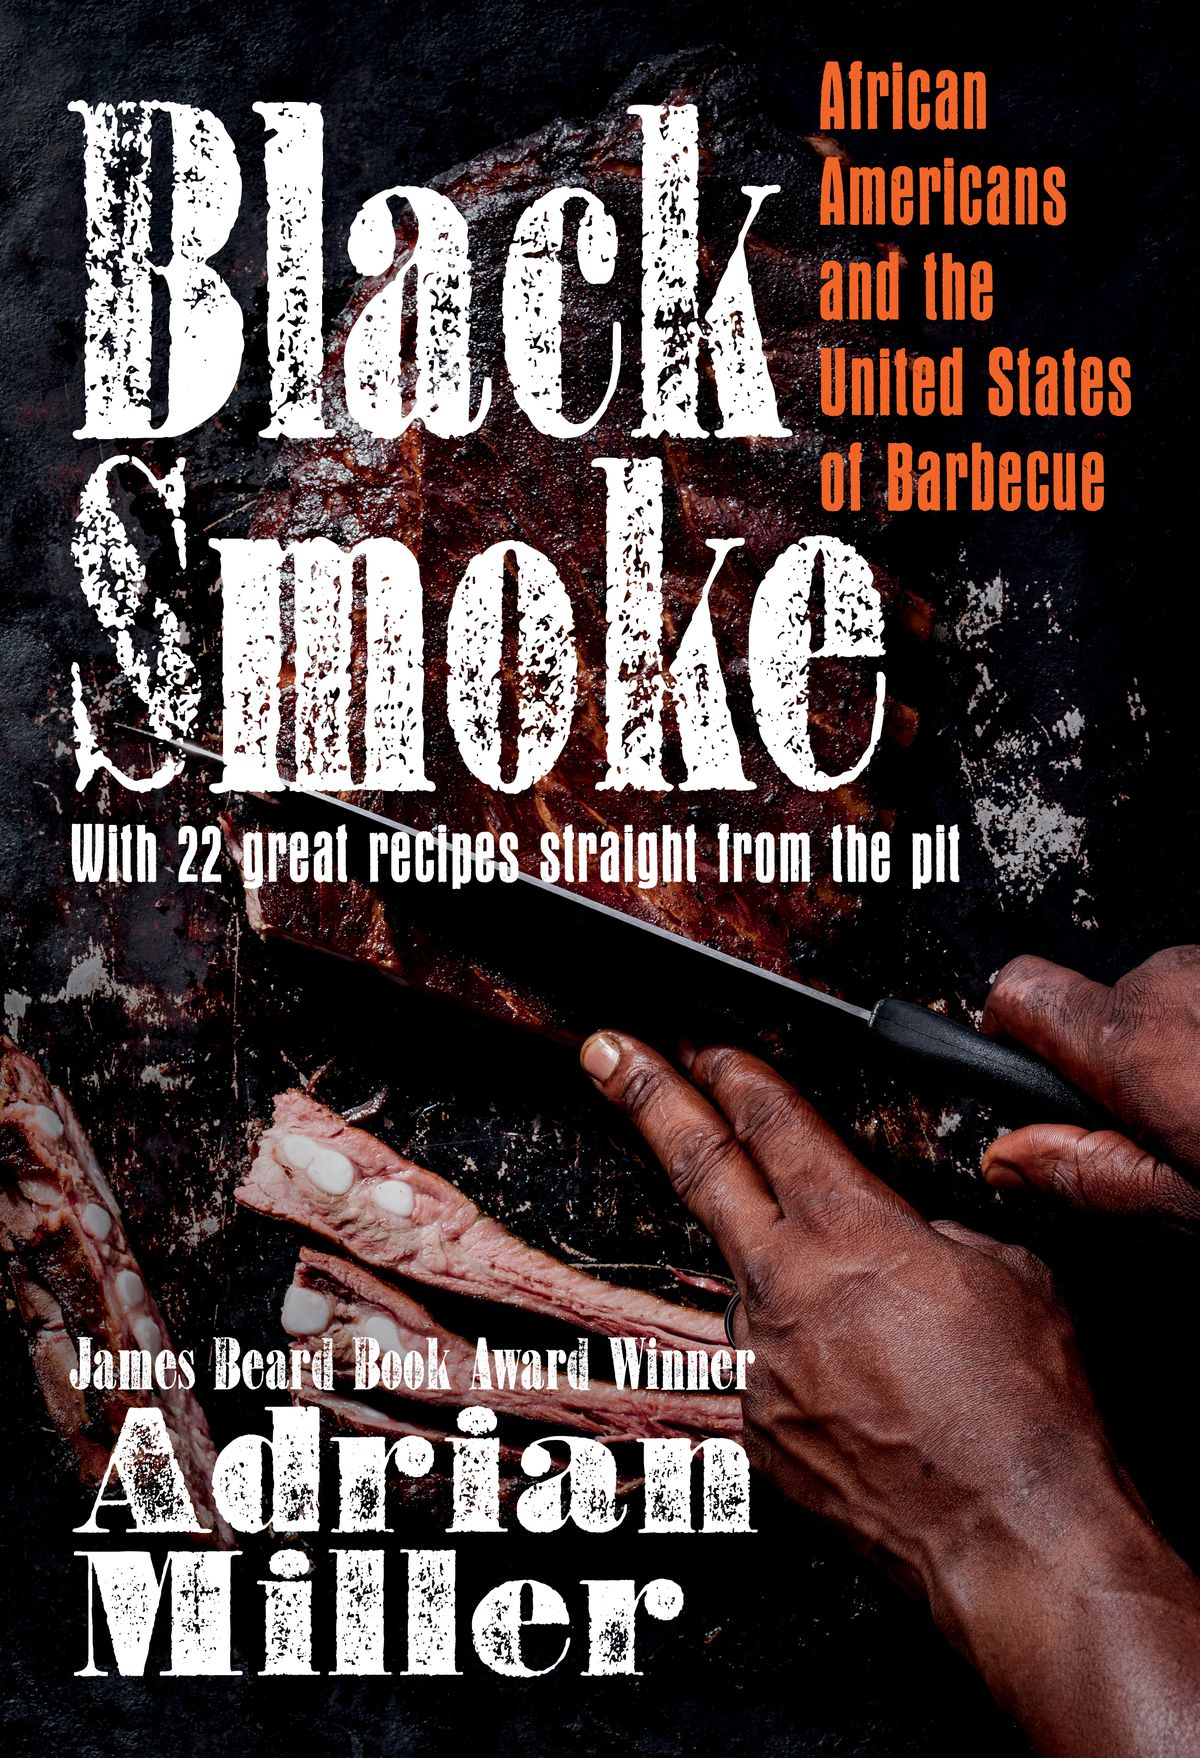 """The book cover for """"Black Smoke"""" depicting a pair of Black hands slicing barbecued meat"""